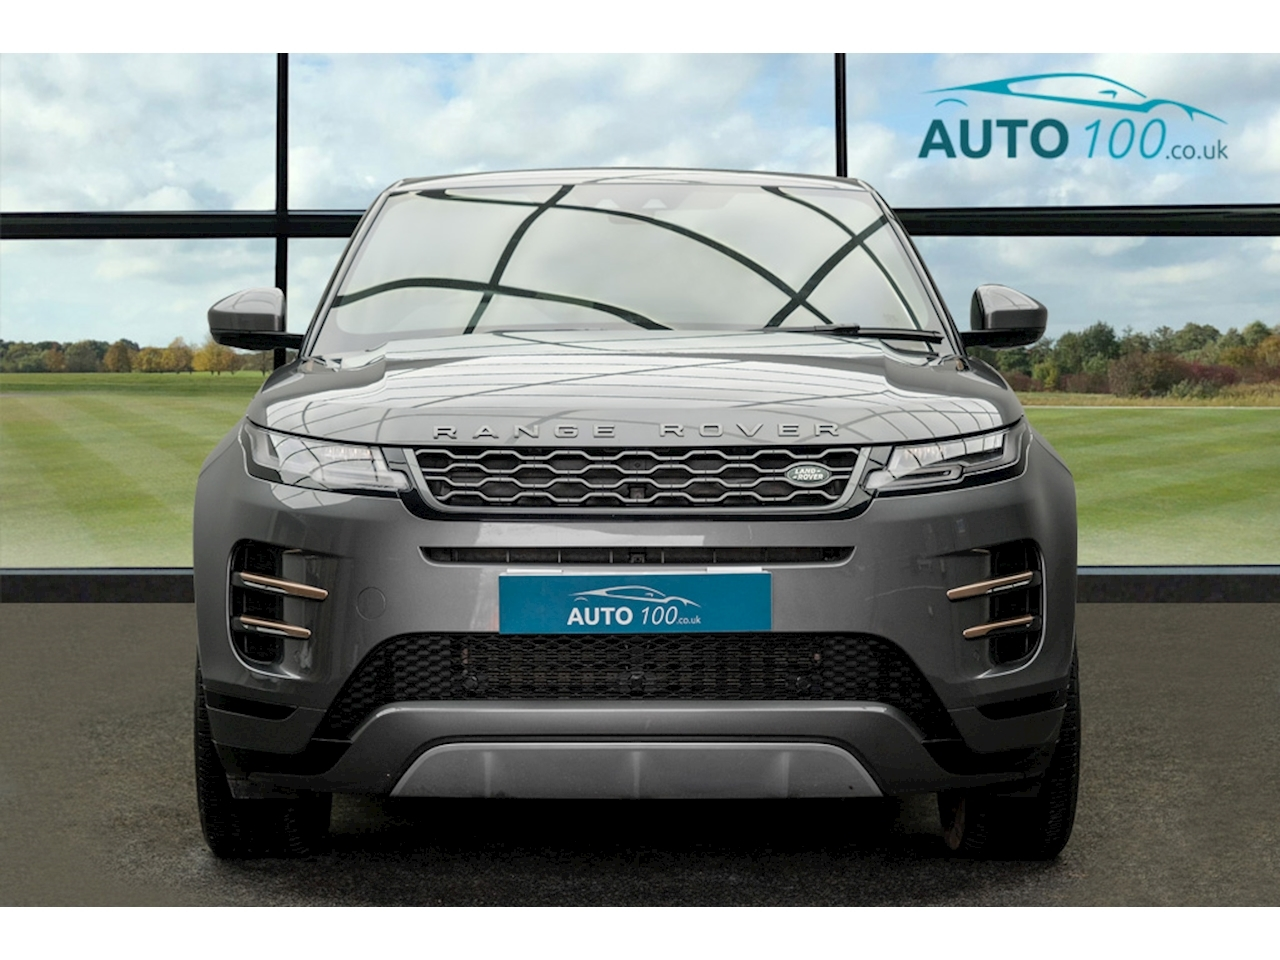 Land Rover 2.0 P200 MHEV R-Dynamic SE SUV 5dr Petrol Auto 4WD (s/s) (200 ps)